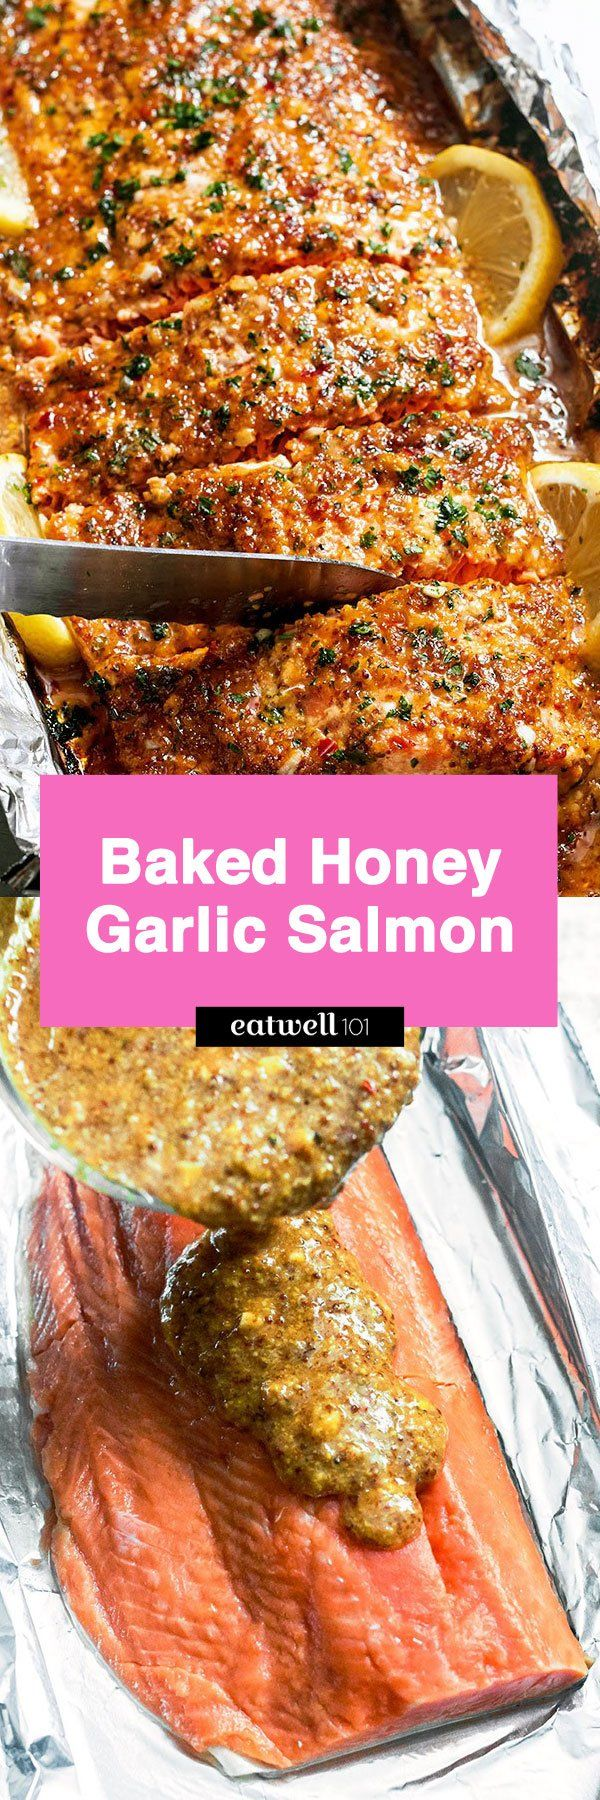 Baked Honey Garlic Salmon in Foil —Sweet and tangy flavors shine in this bright seafood dinner. A whole salmon fillet coated in honey mustard garlic sauce gets baked in foil and broiled to a flak…